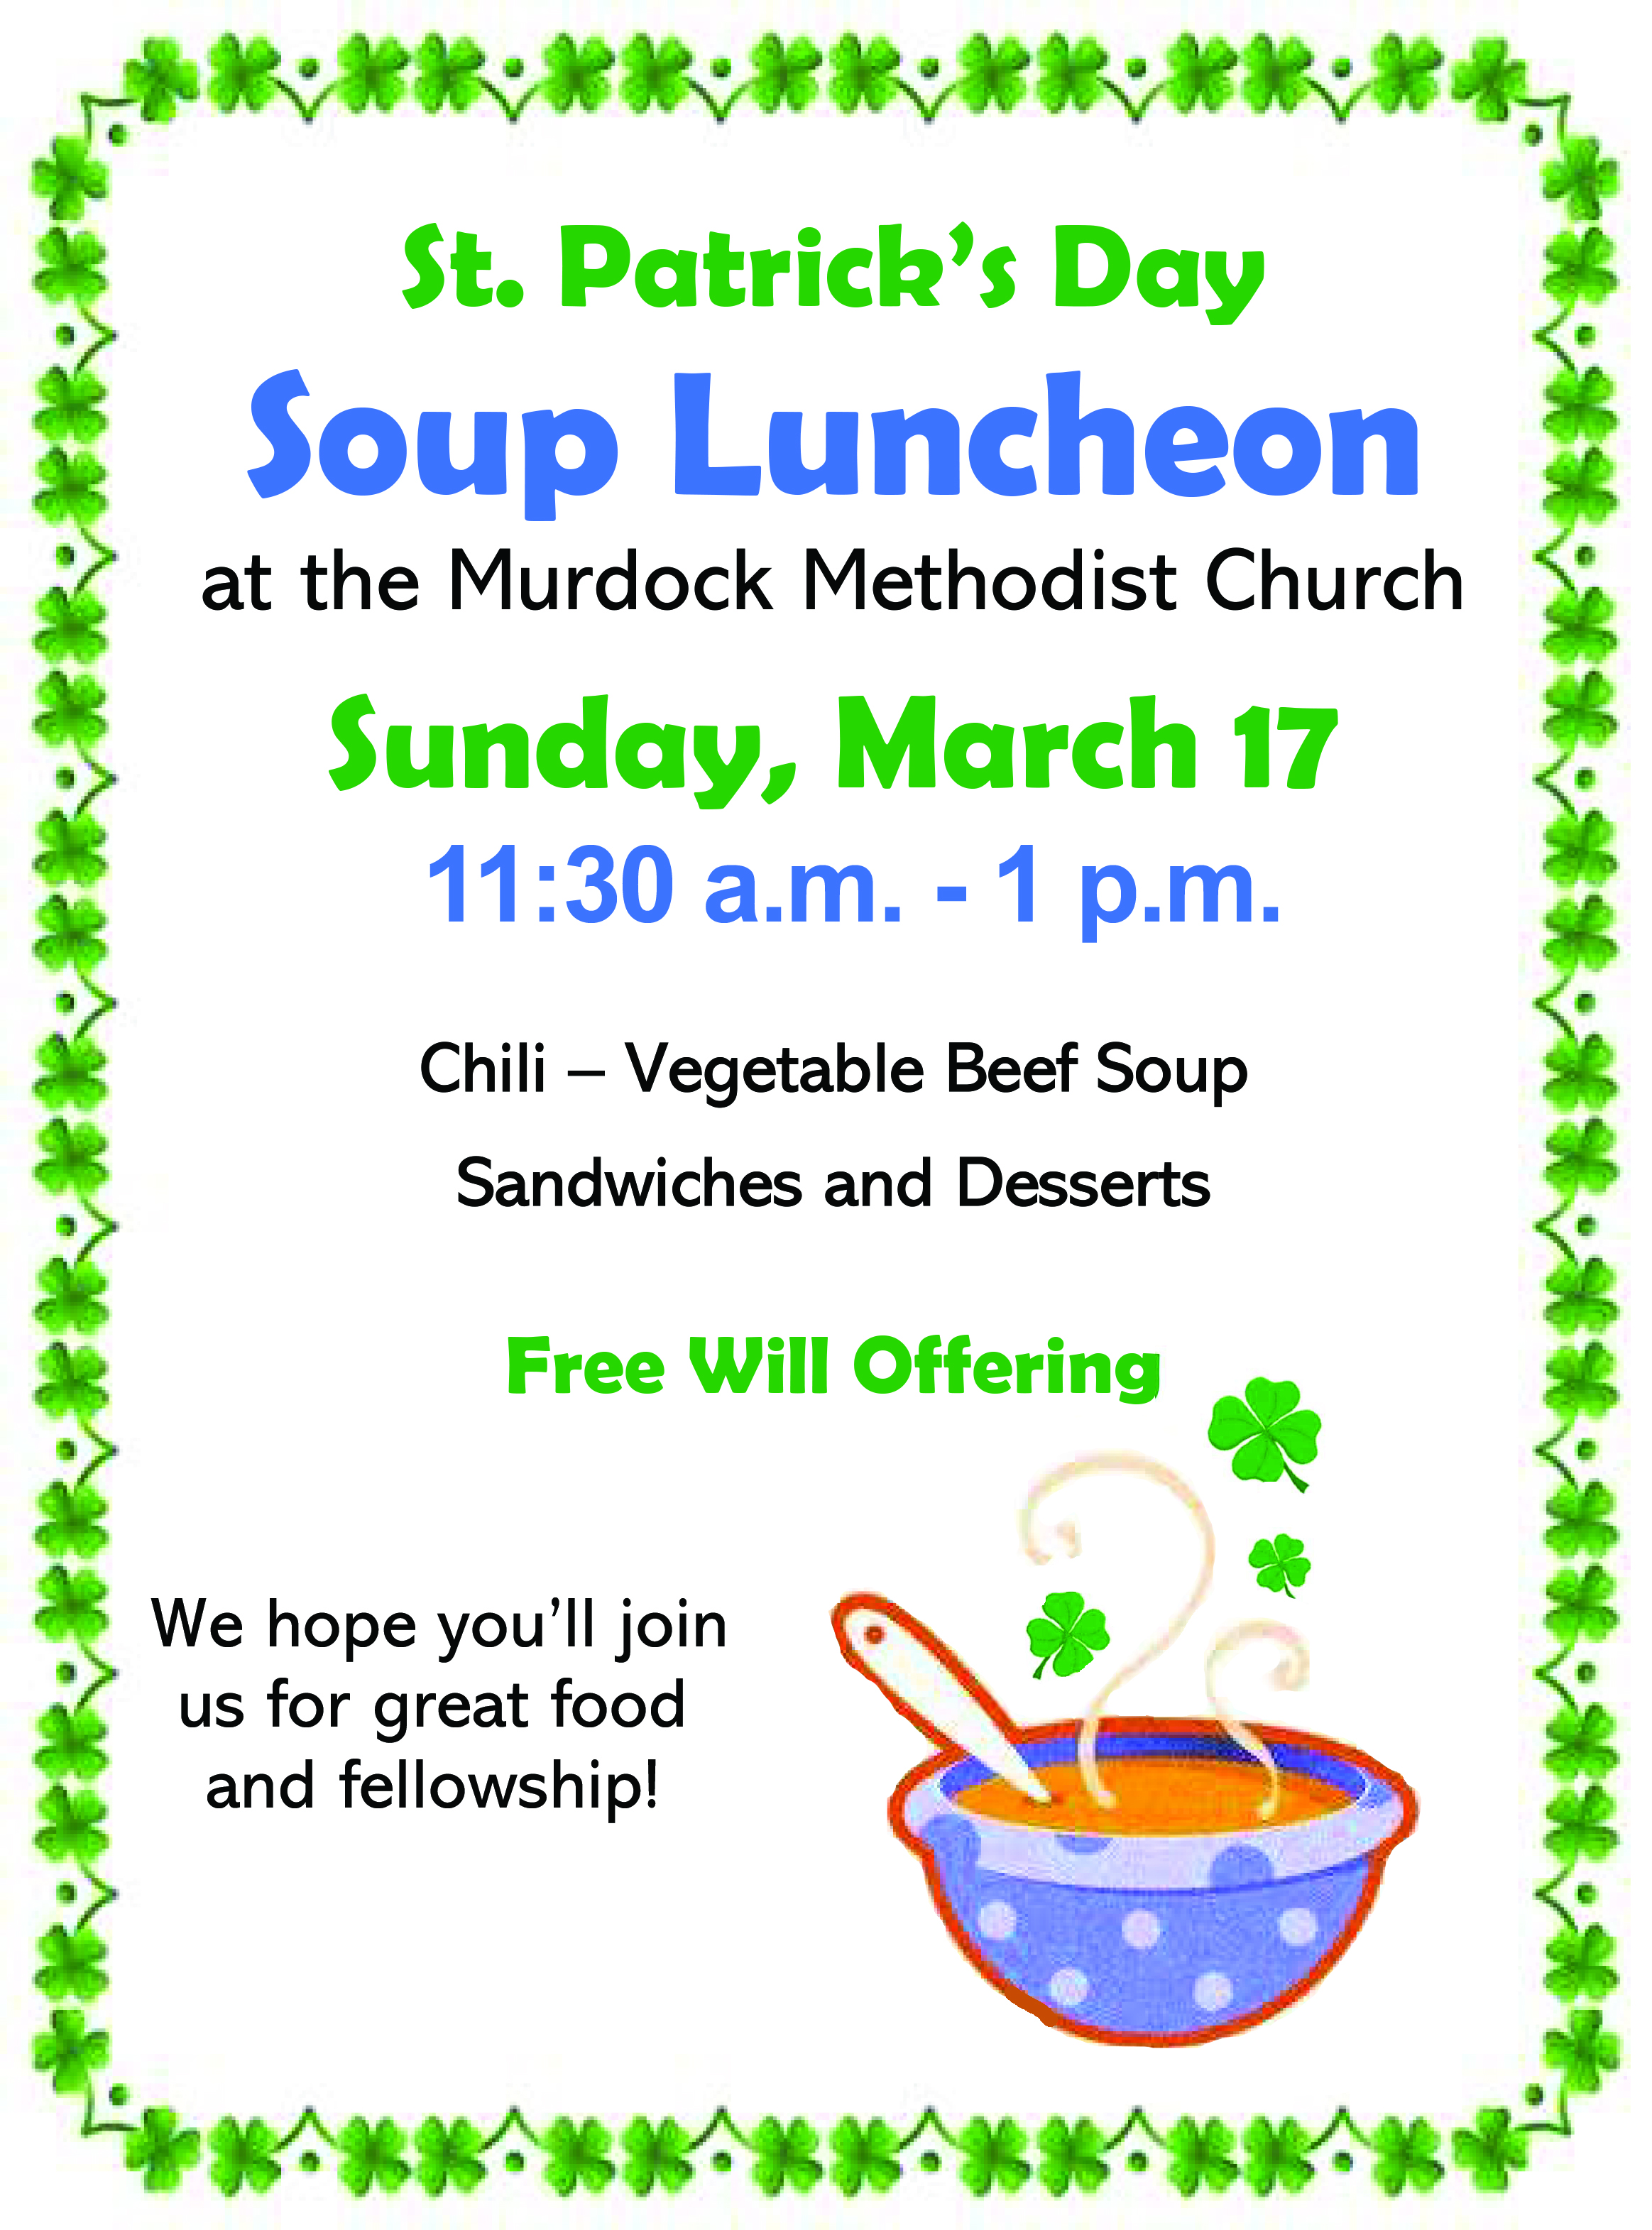 Soup Luncheon Flyer